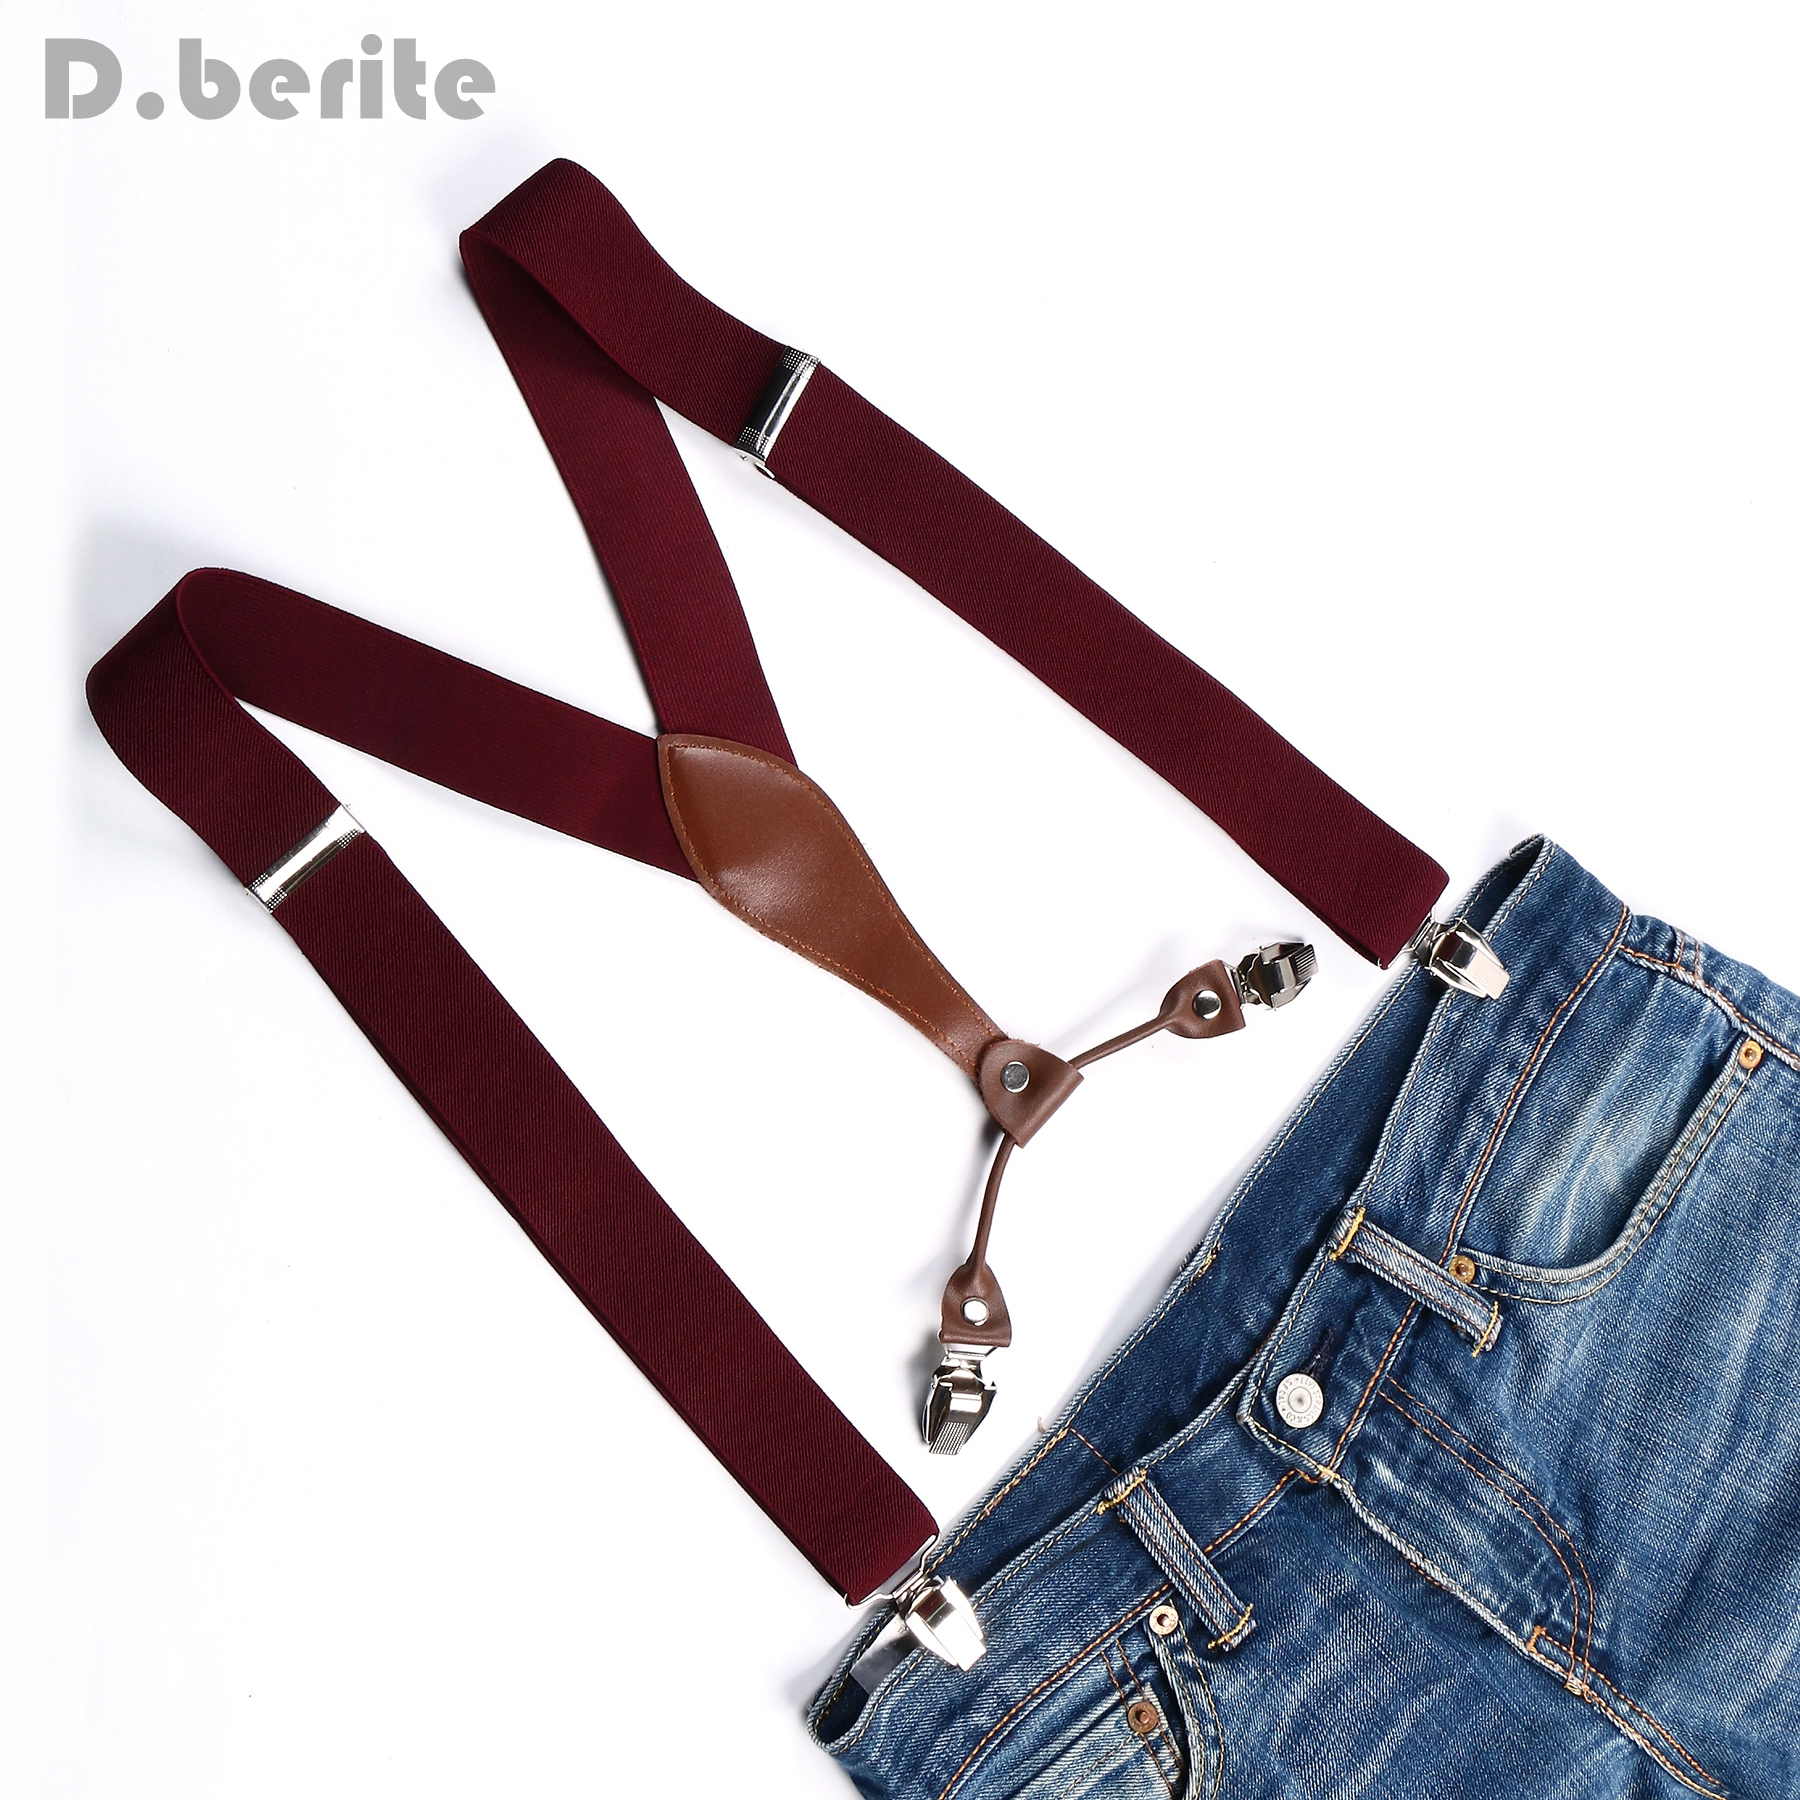 Men's Suspender Women Braces Unisex Adjustable Metal Clip-on Solid Cameo Brown BD604